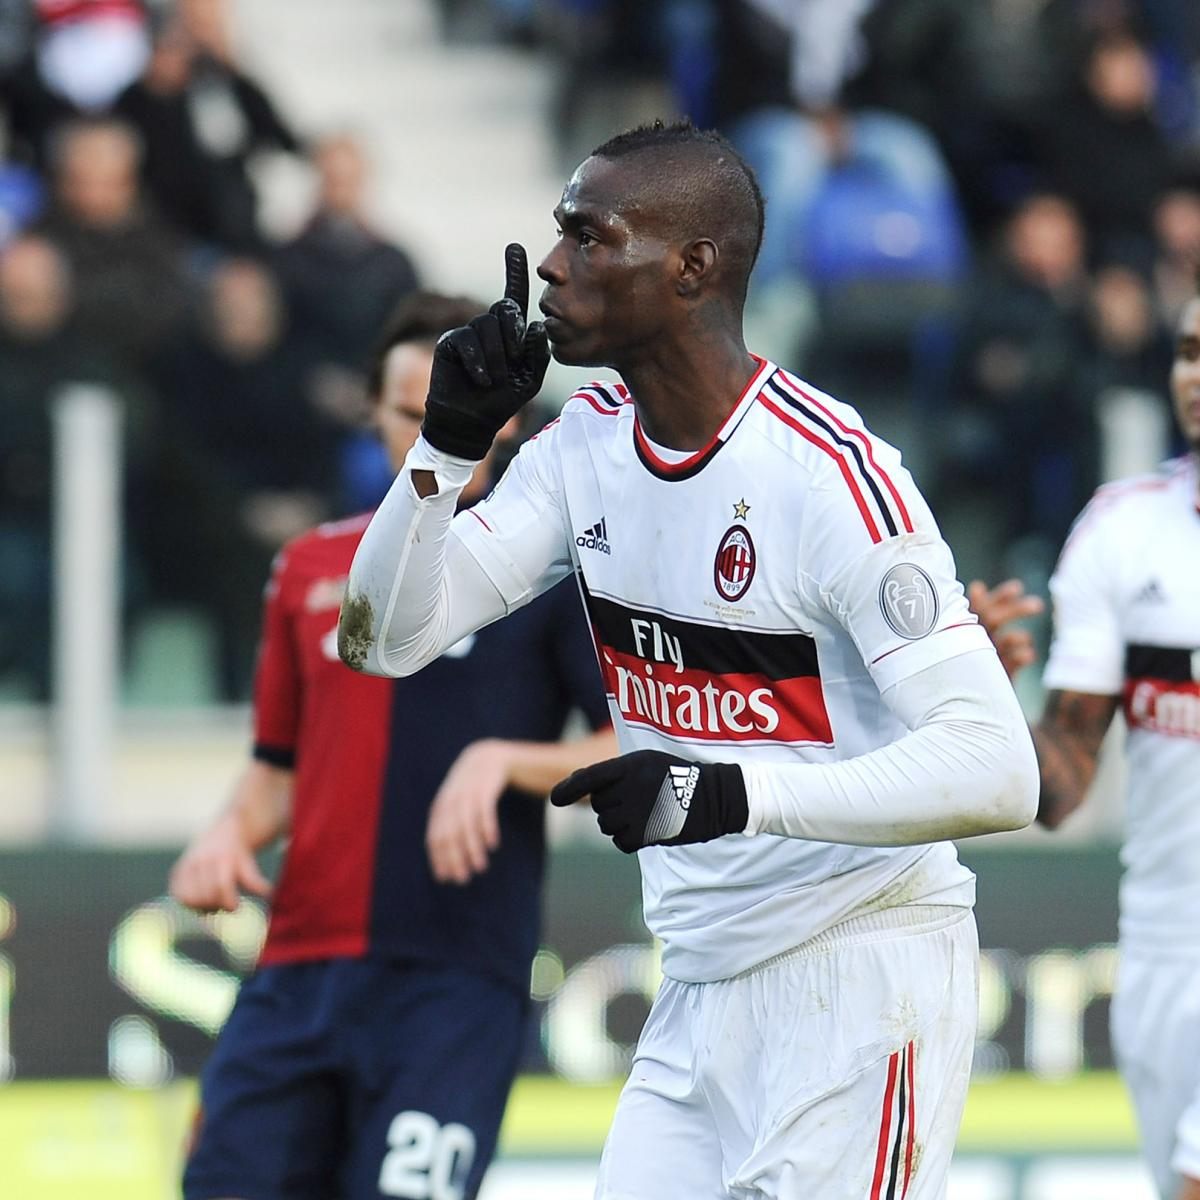 milan udinese highlights balotelli ac - photo#9